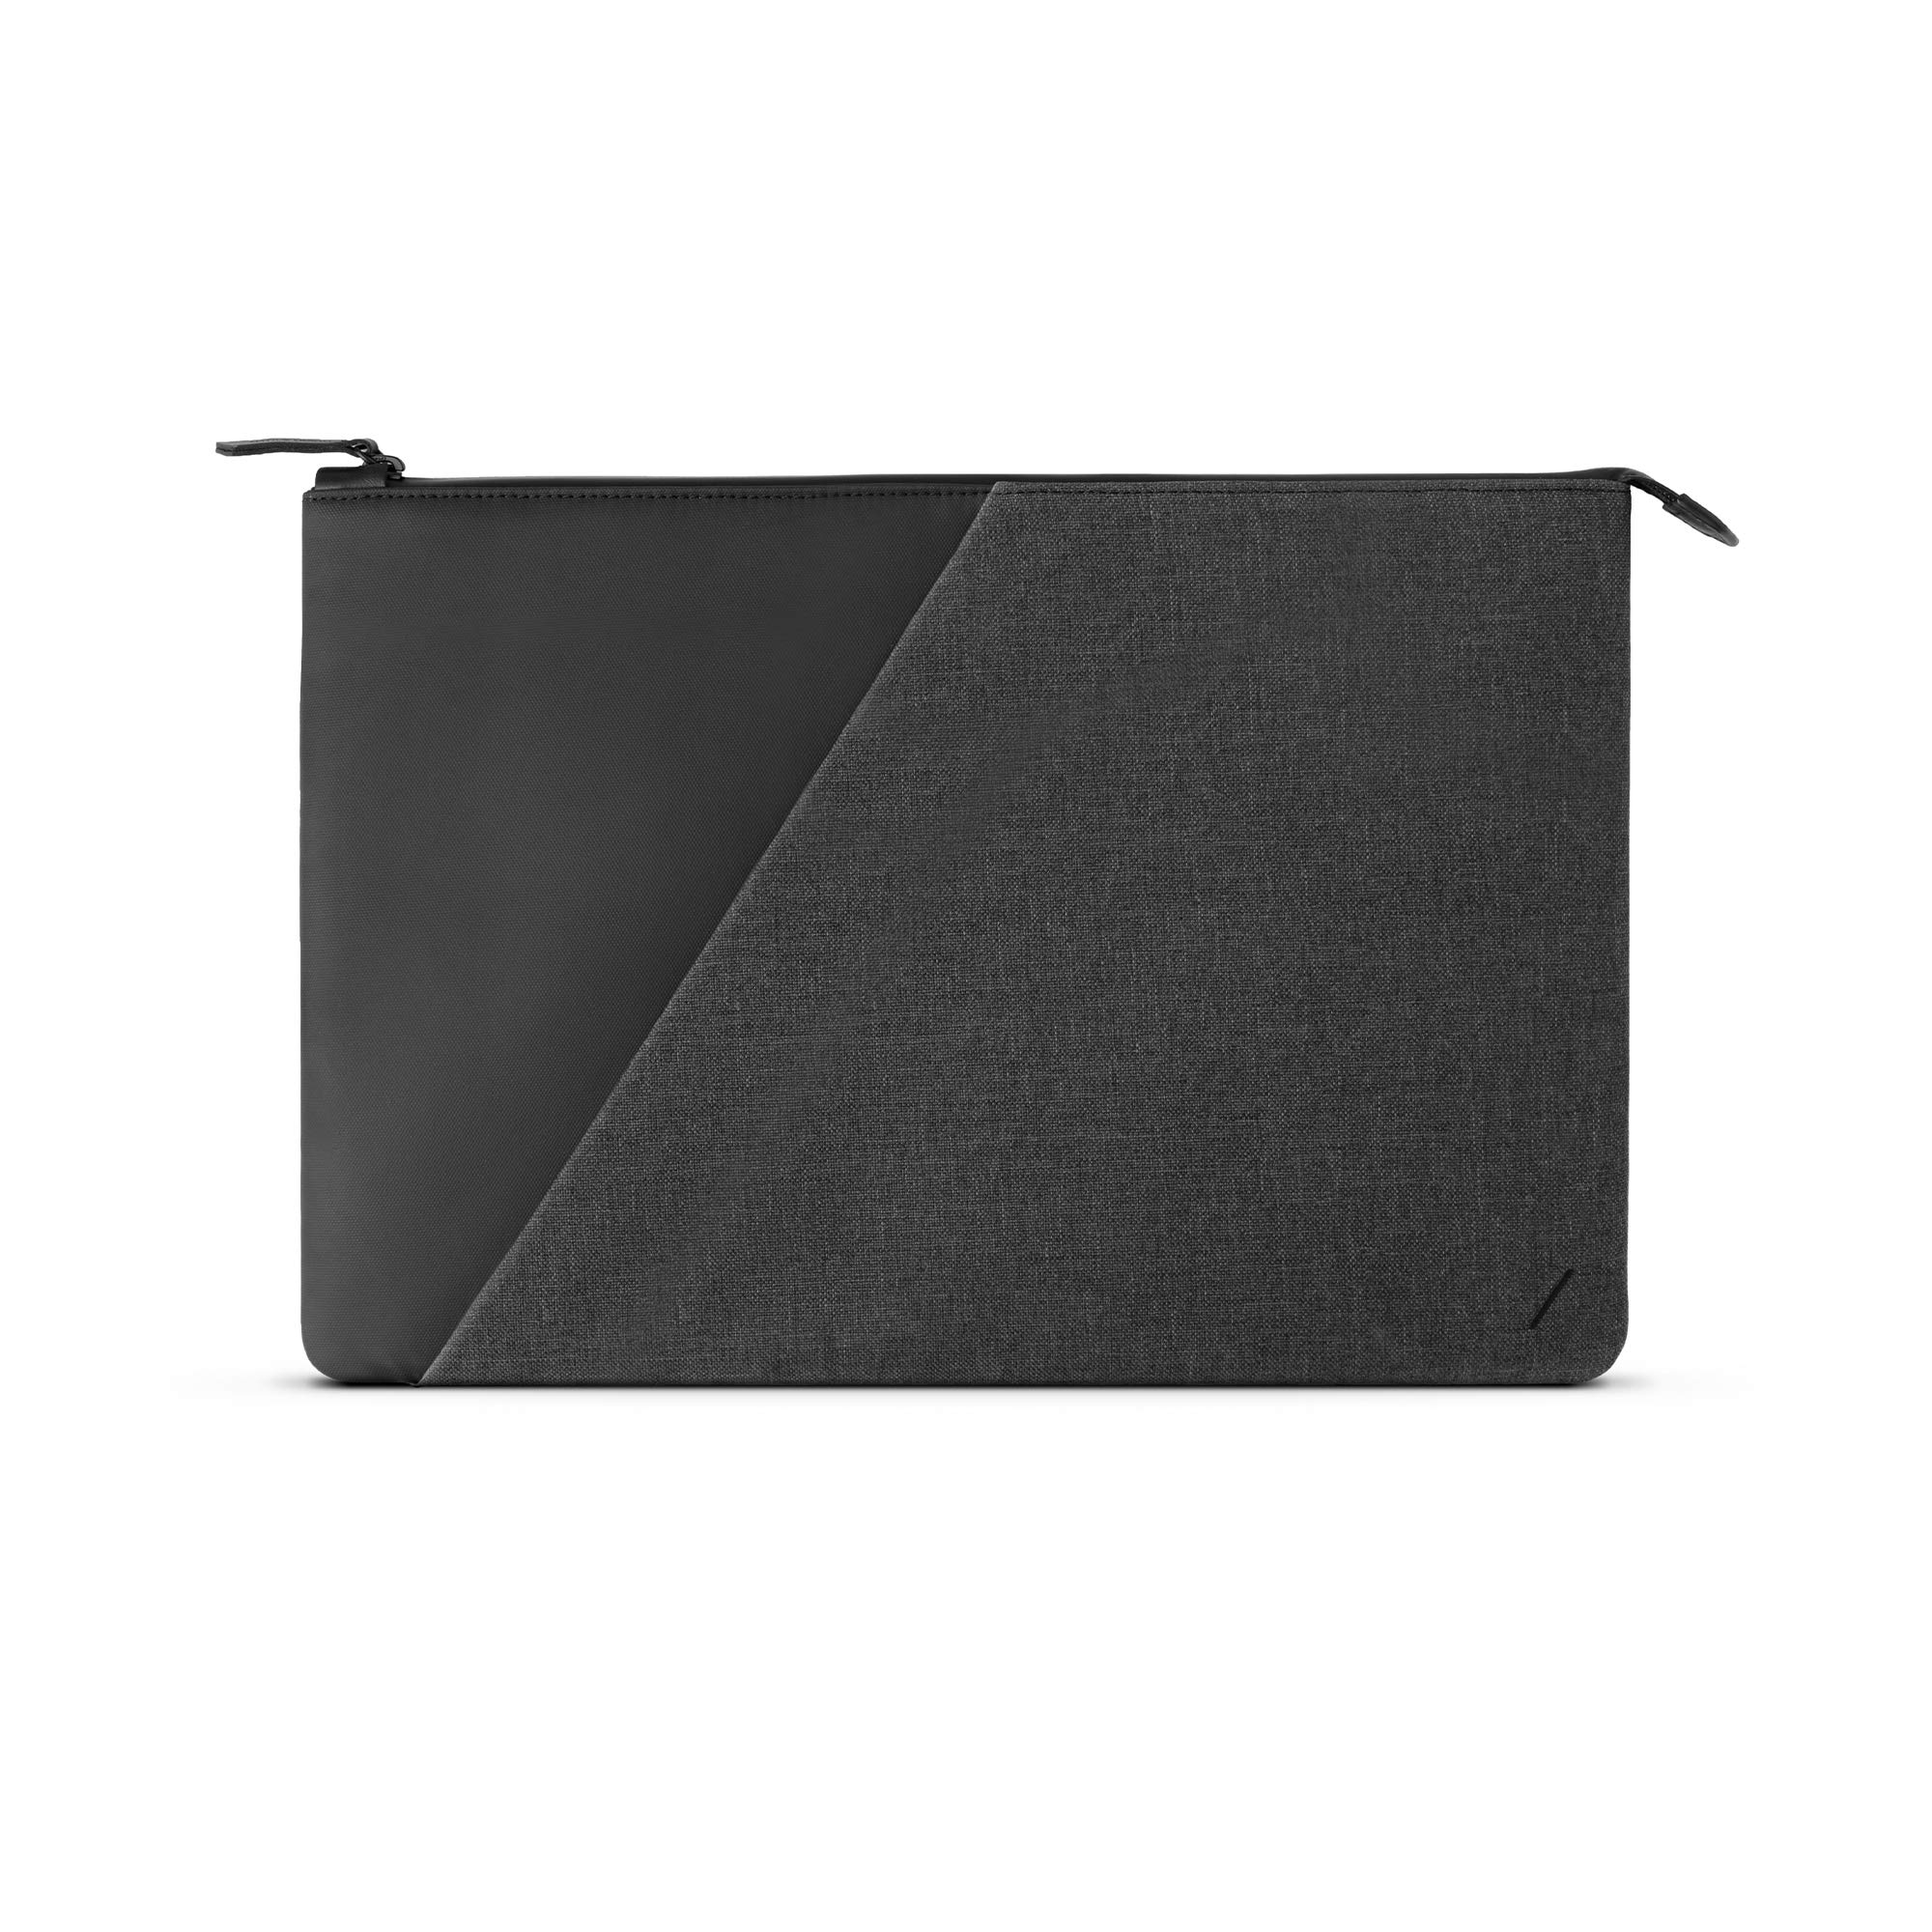 Native Union Stow 15'' Laptop Sleeve - Sleek & Slim 360-Degree Protection with Exterior Pocket Compatible with 15'' MacBook (Slate) by Native Union